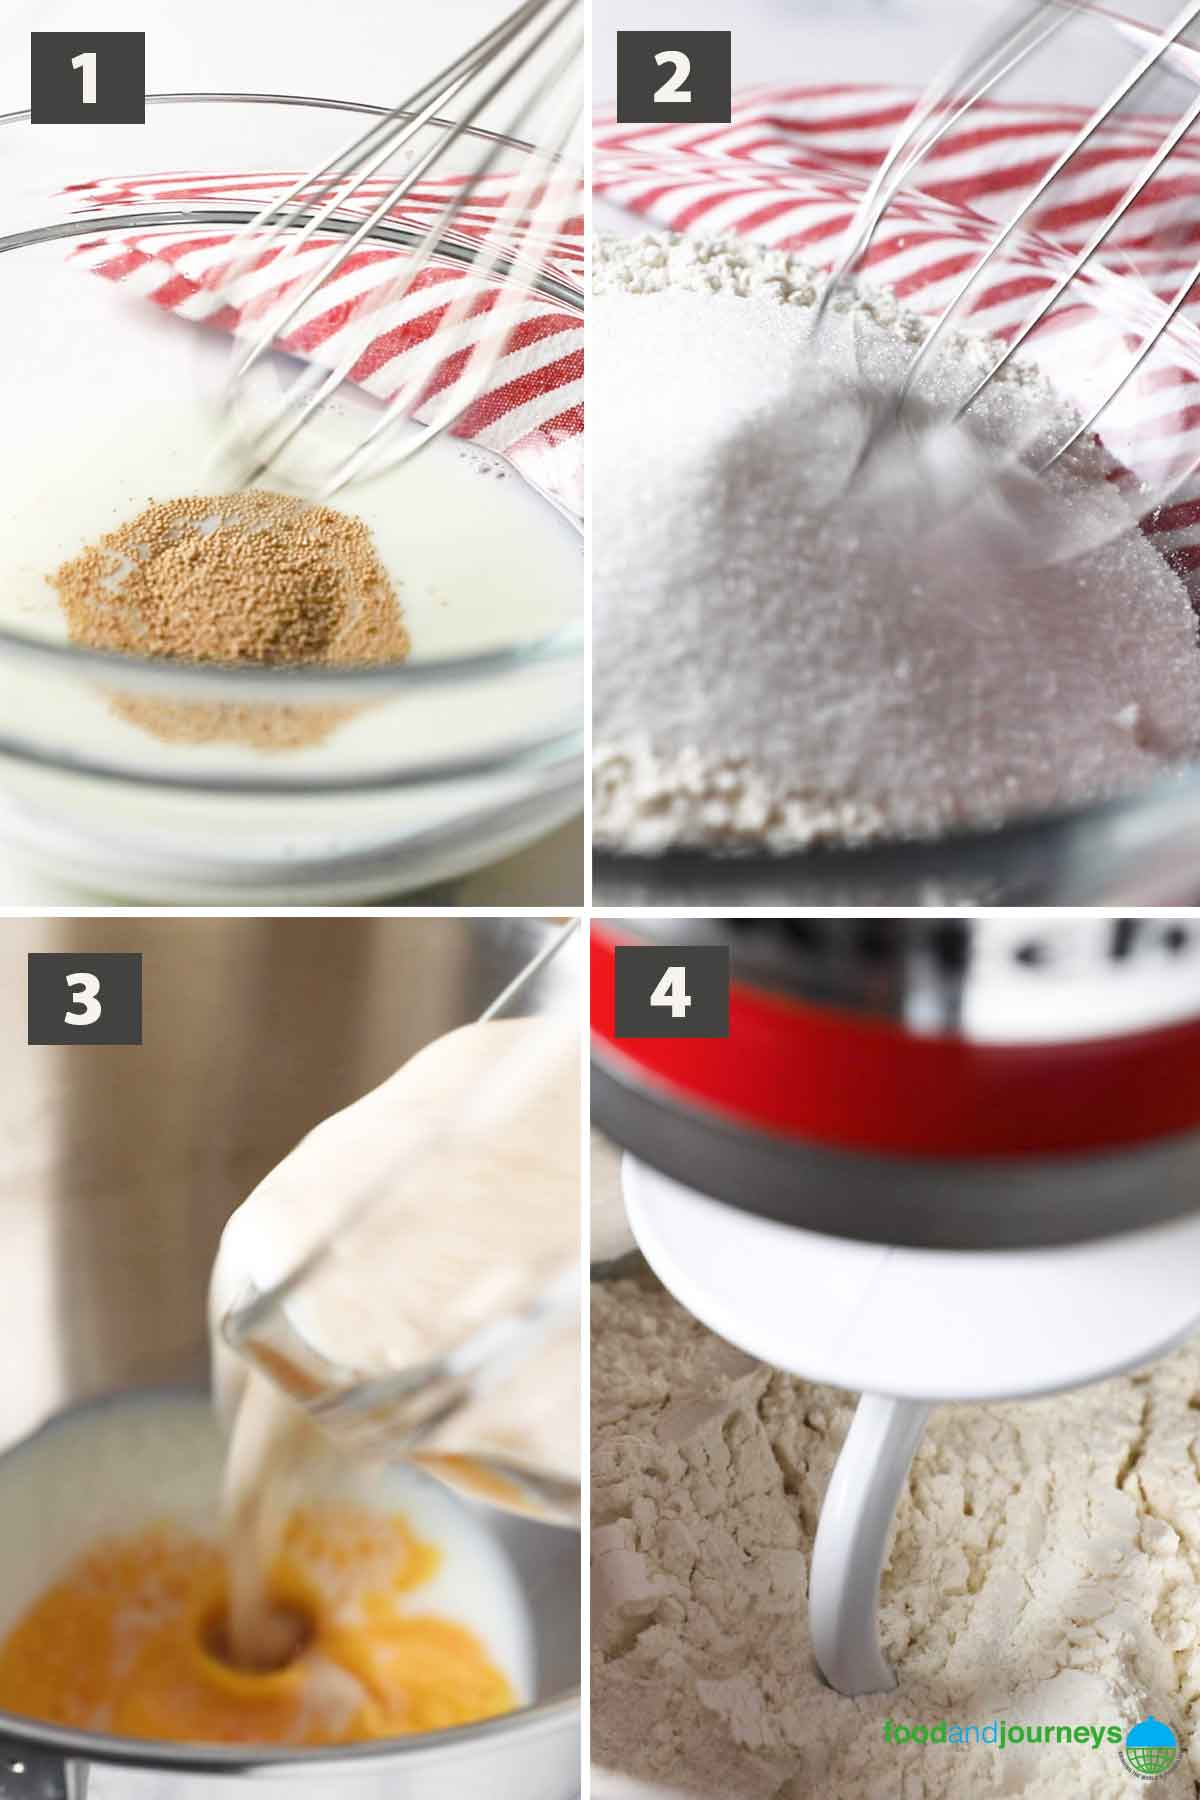 First part of a collage of images showing the step by step process on how to make pandesal.